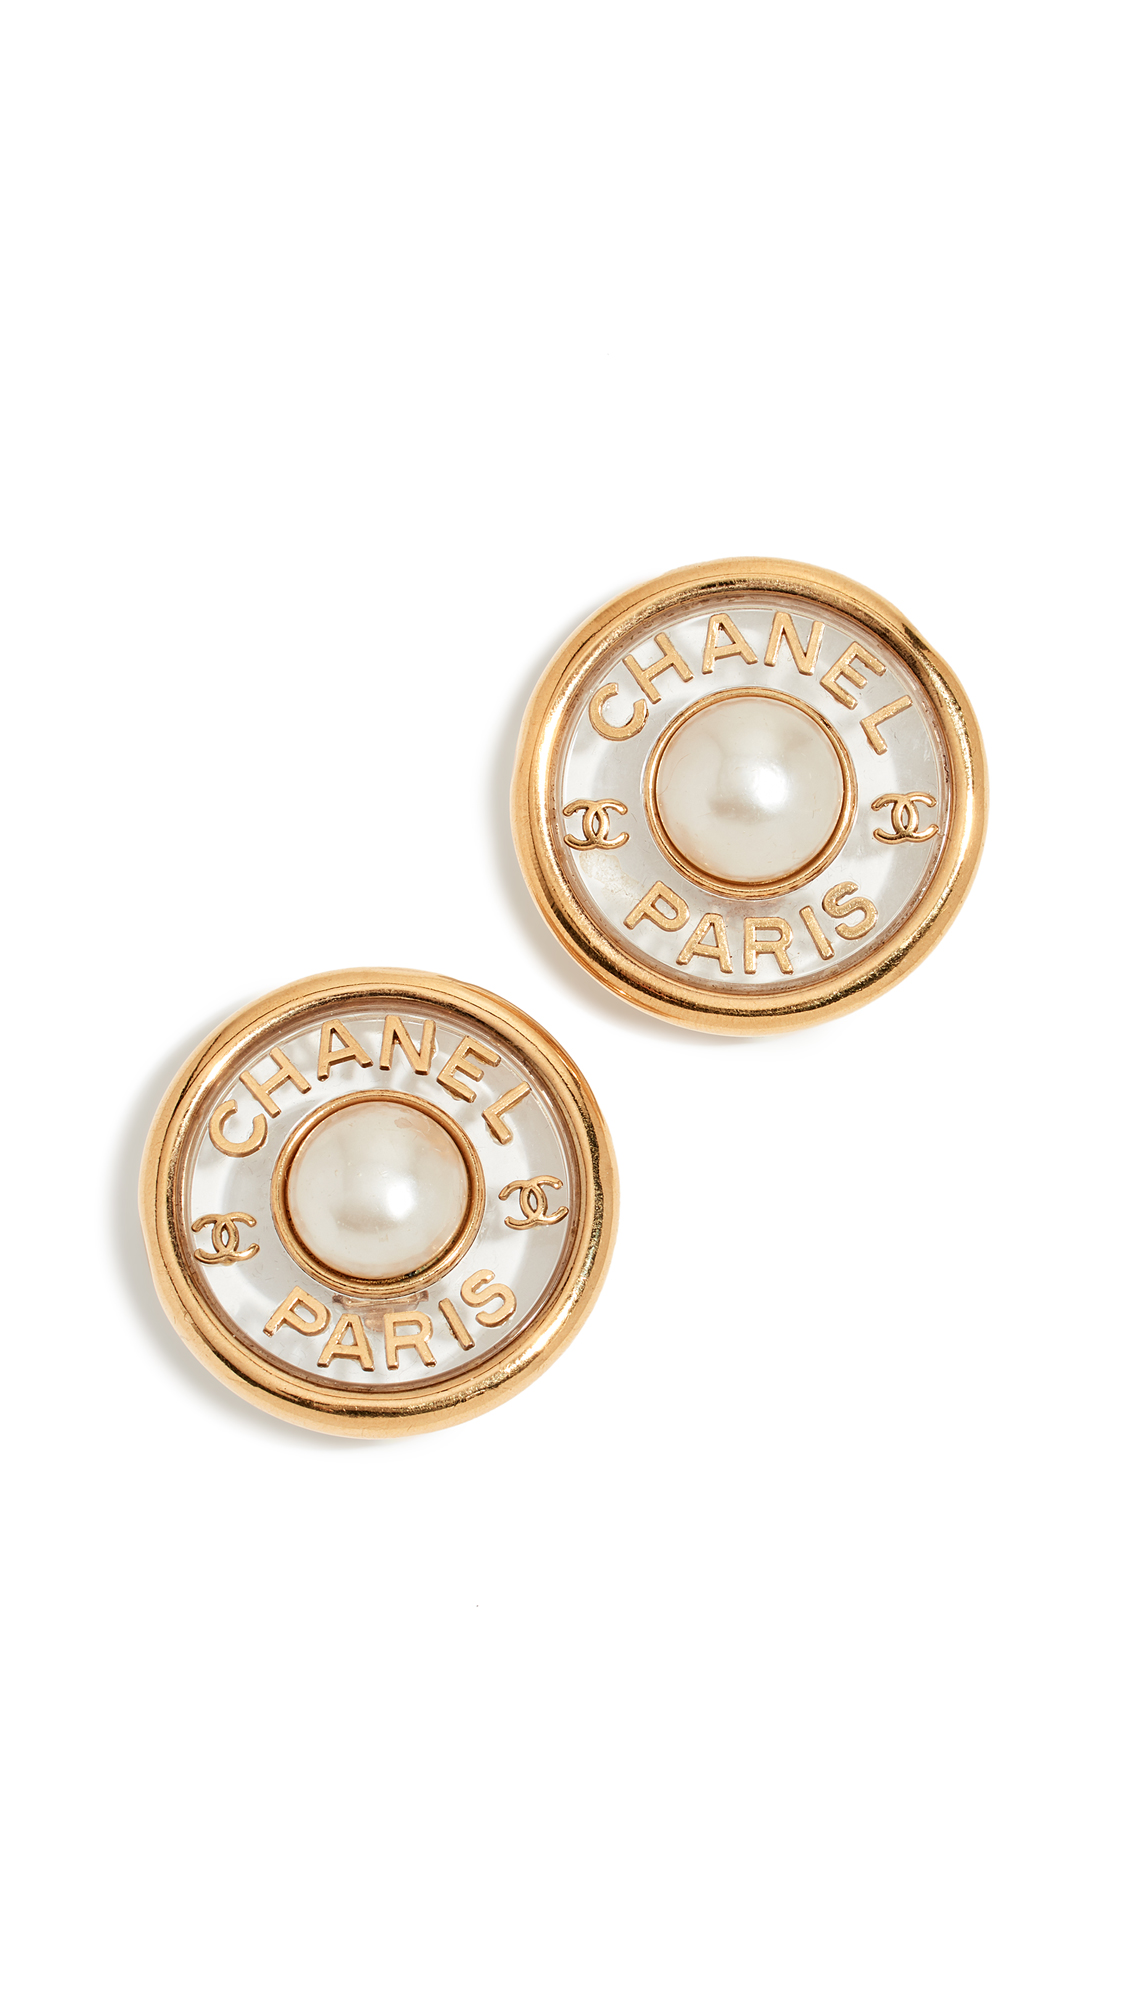 WHAT GOES AROUND COMES AROUND Chanel Imitation Pearl Center Button Earrings in Gold